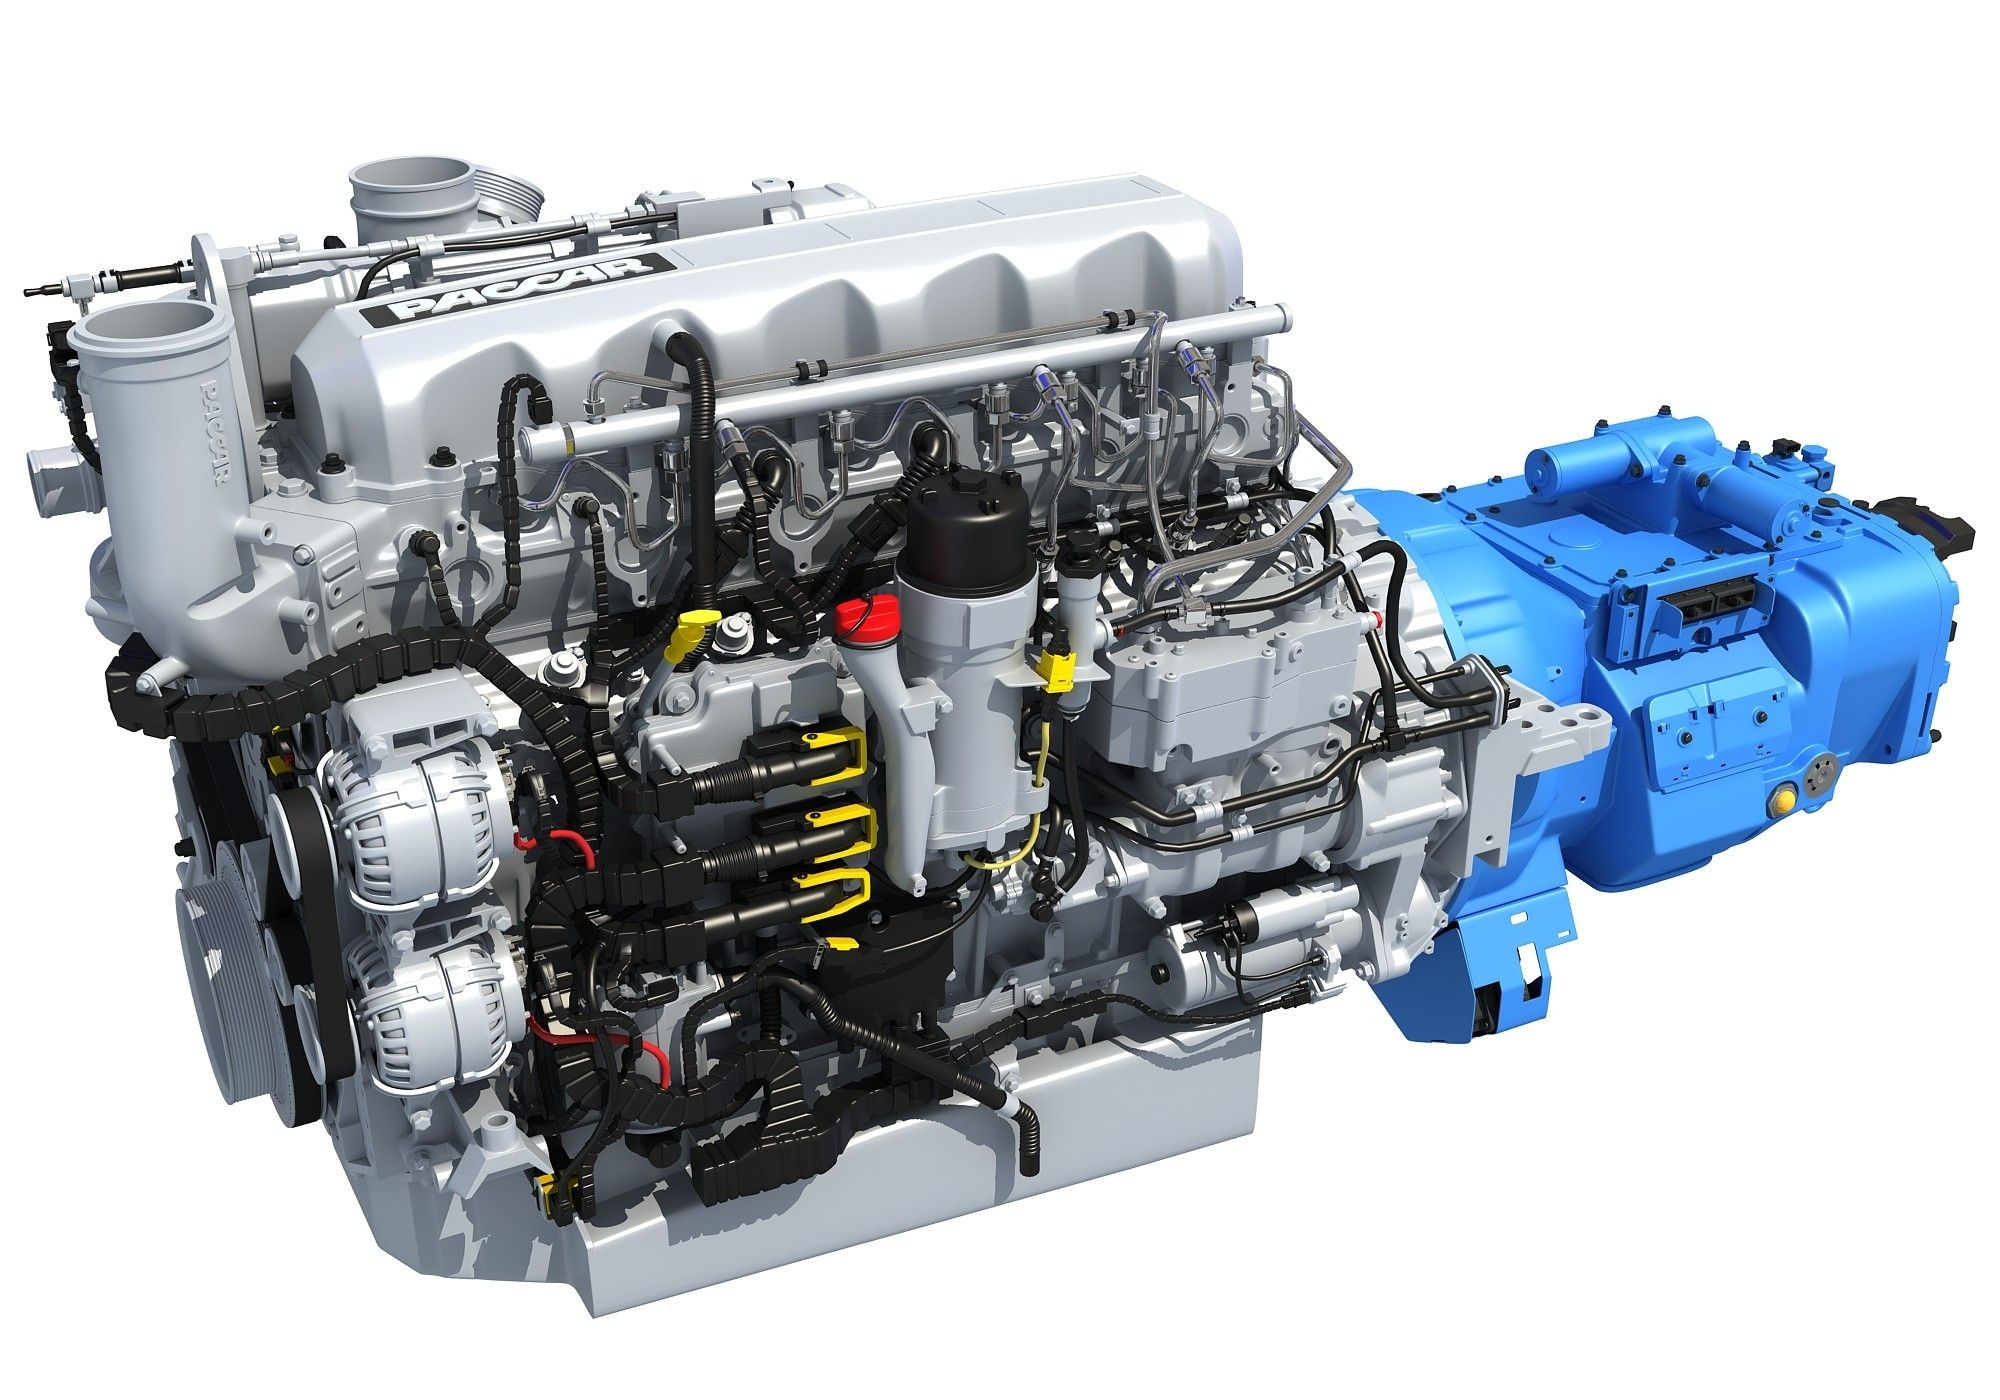 Paccar MX-13 Engine with Transmission | Engines for Every